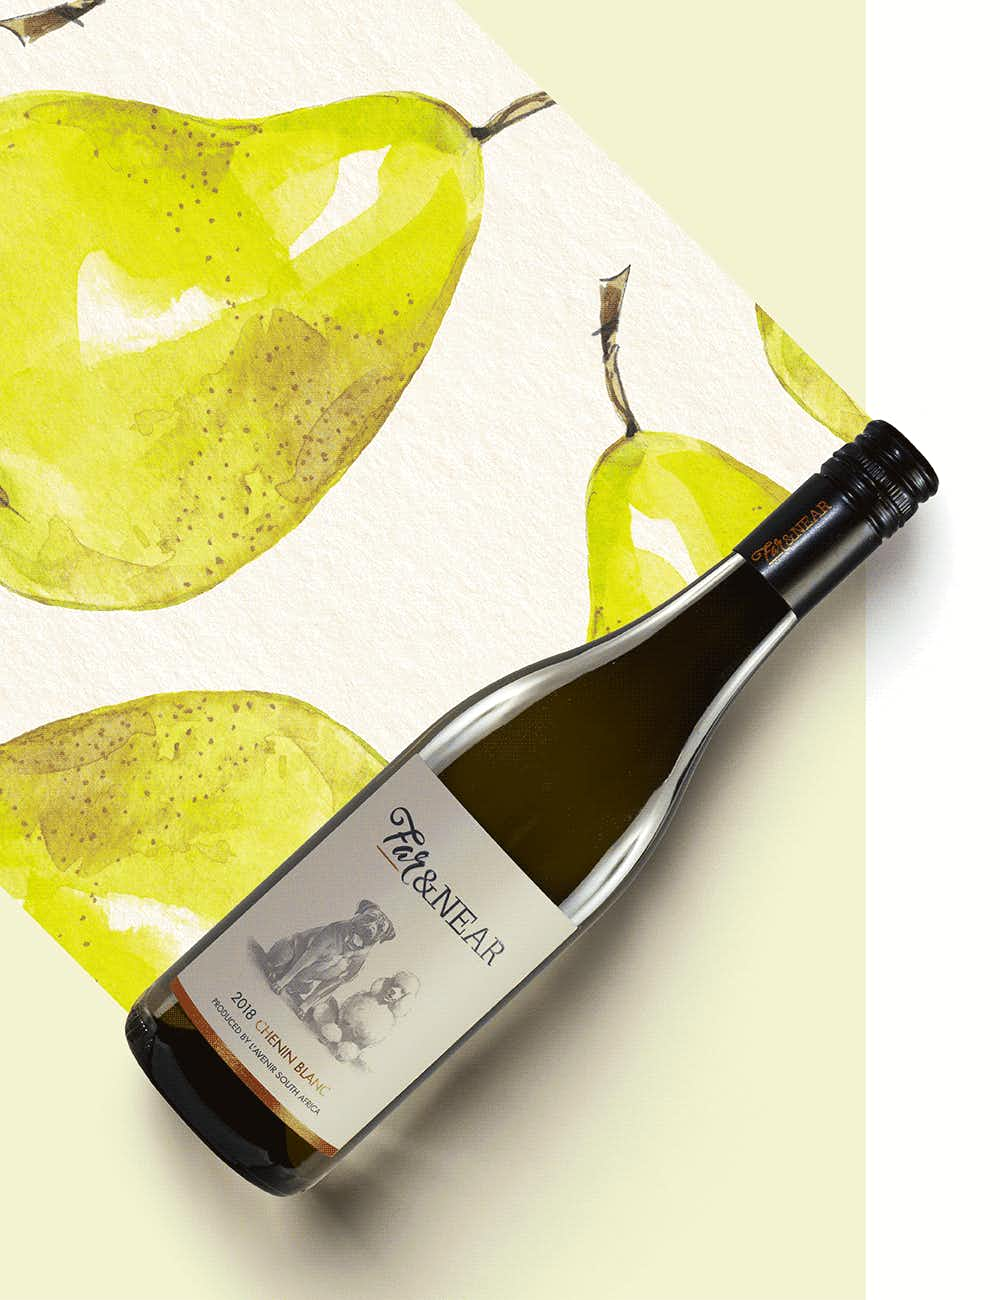 L'Avenir Estate Far & Near Chenin Blanc 2018